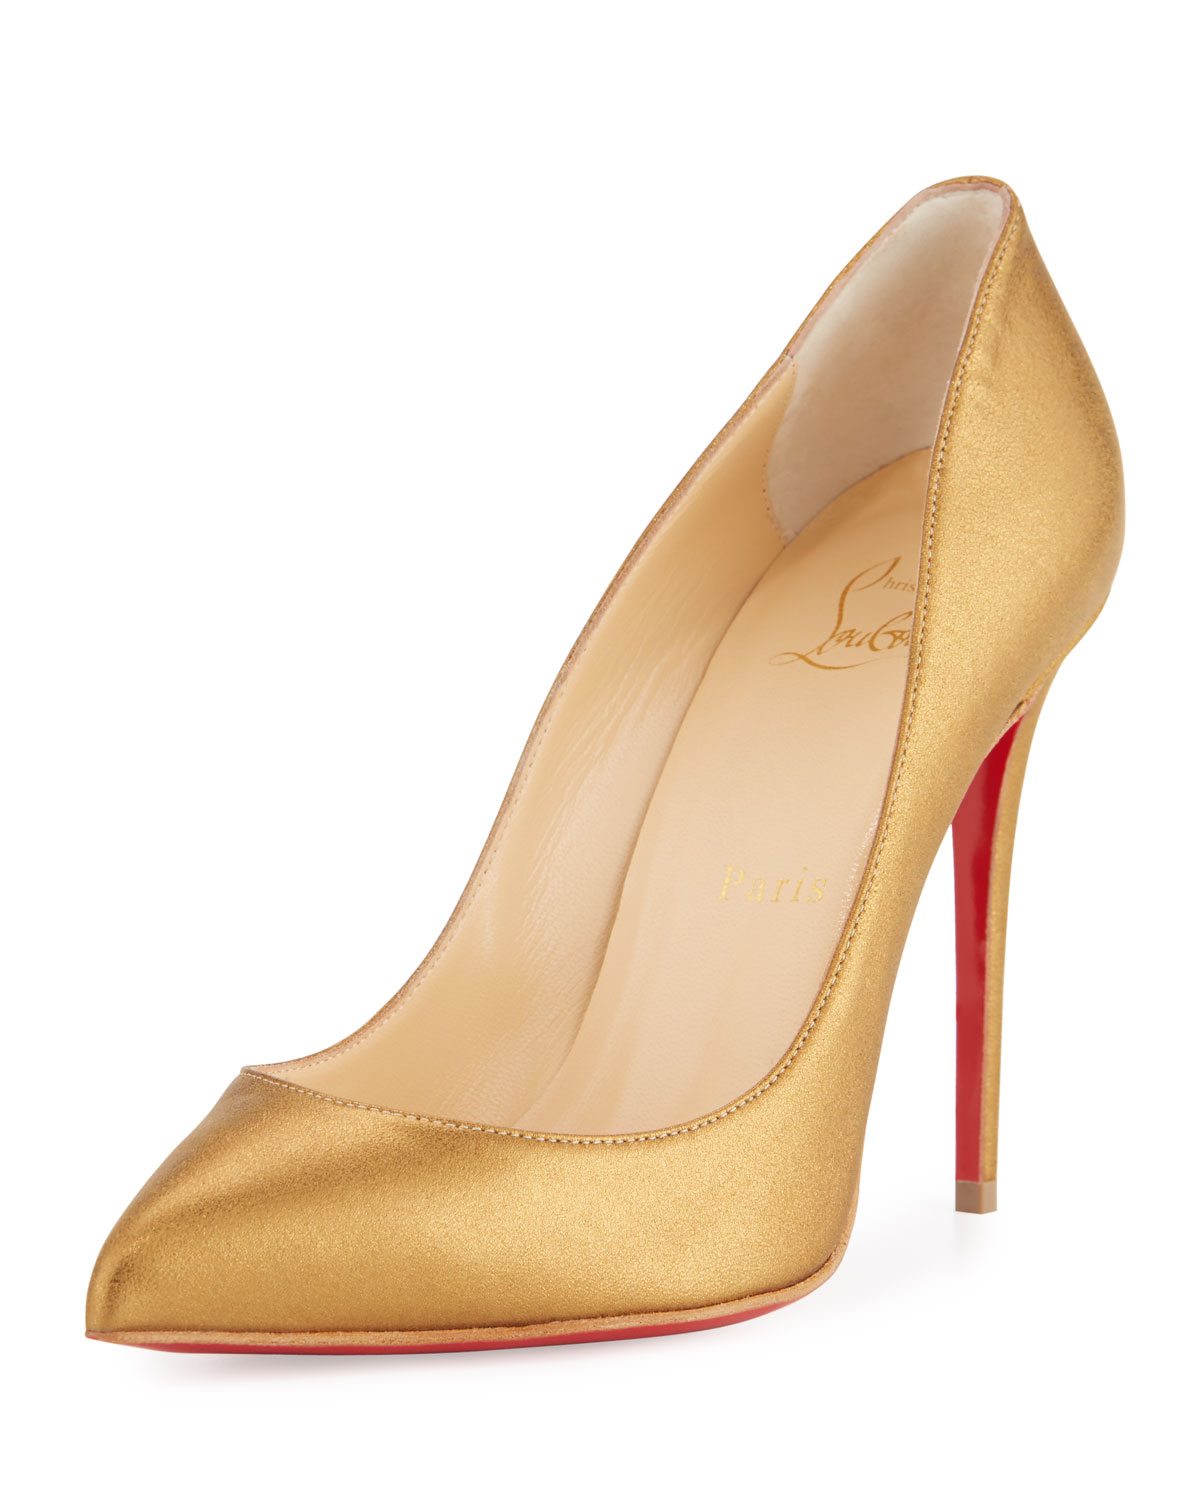 on sale 8efc4 1874c Pigalle Follies Leather 100mm Red Sole Pump, Bronze